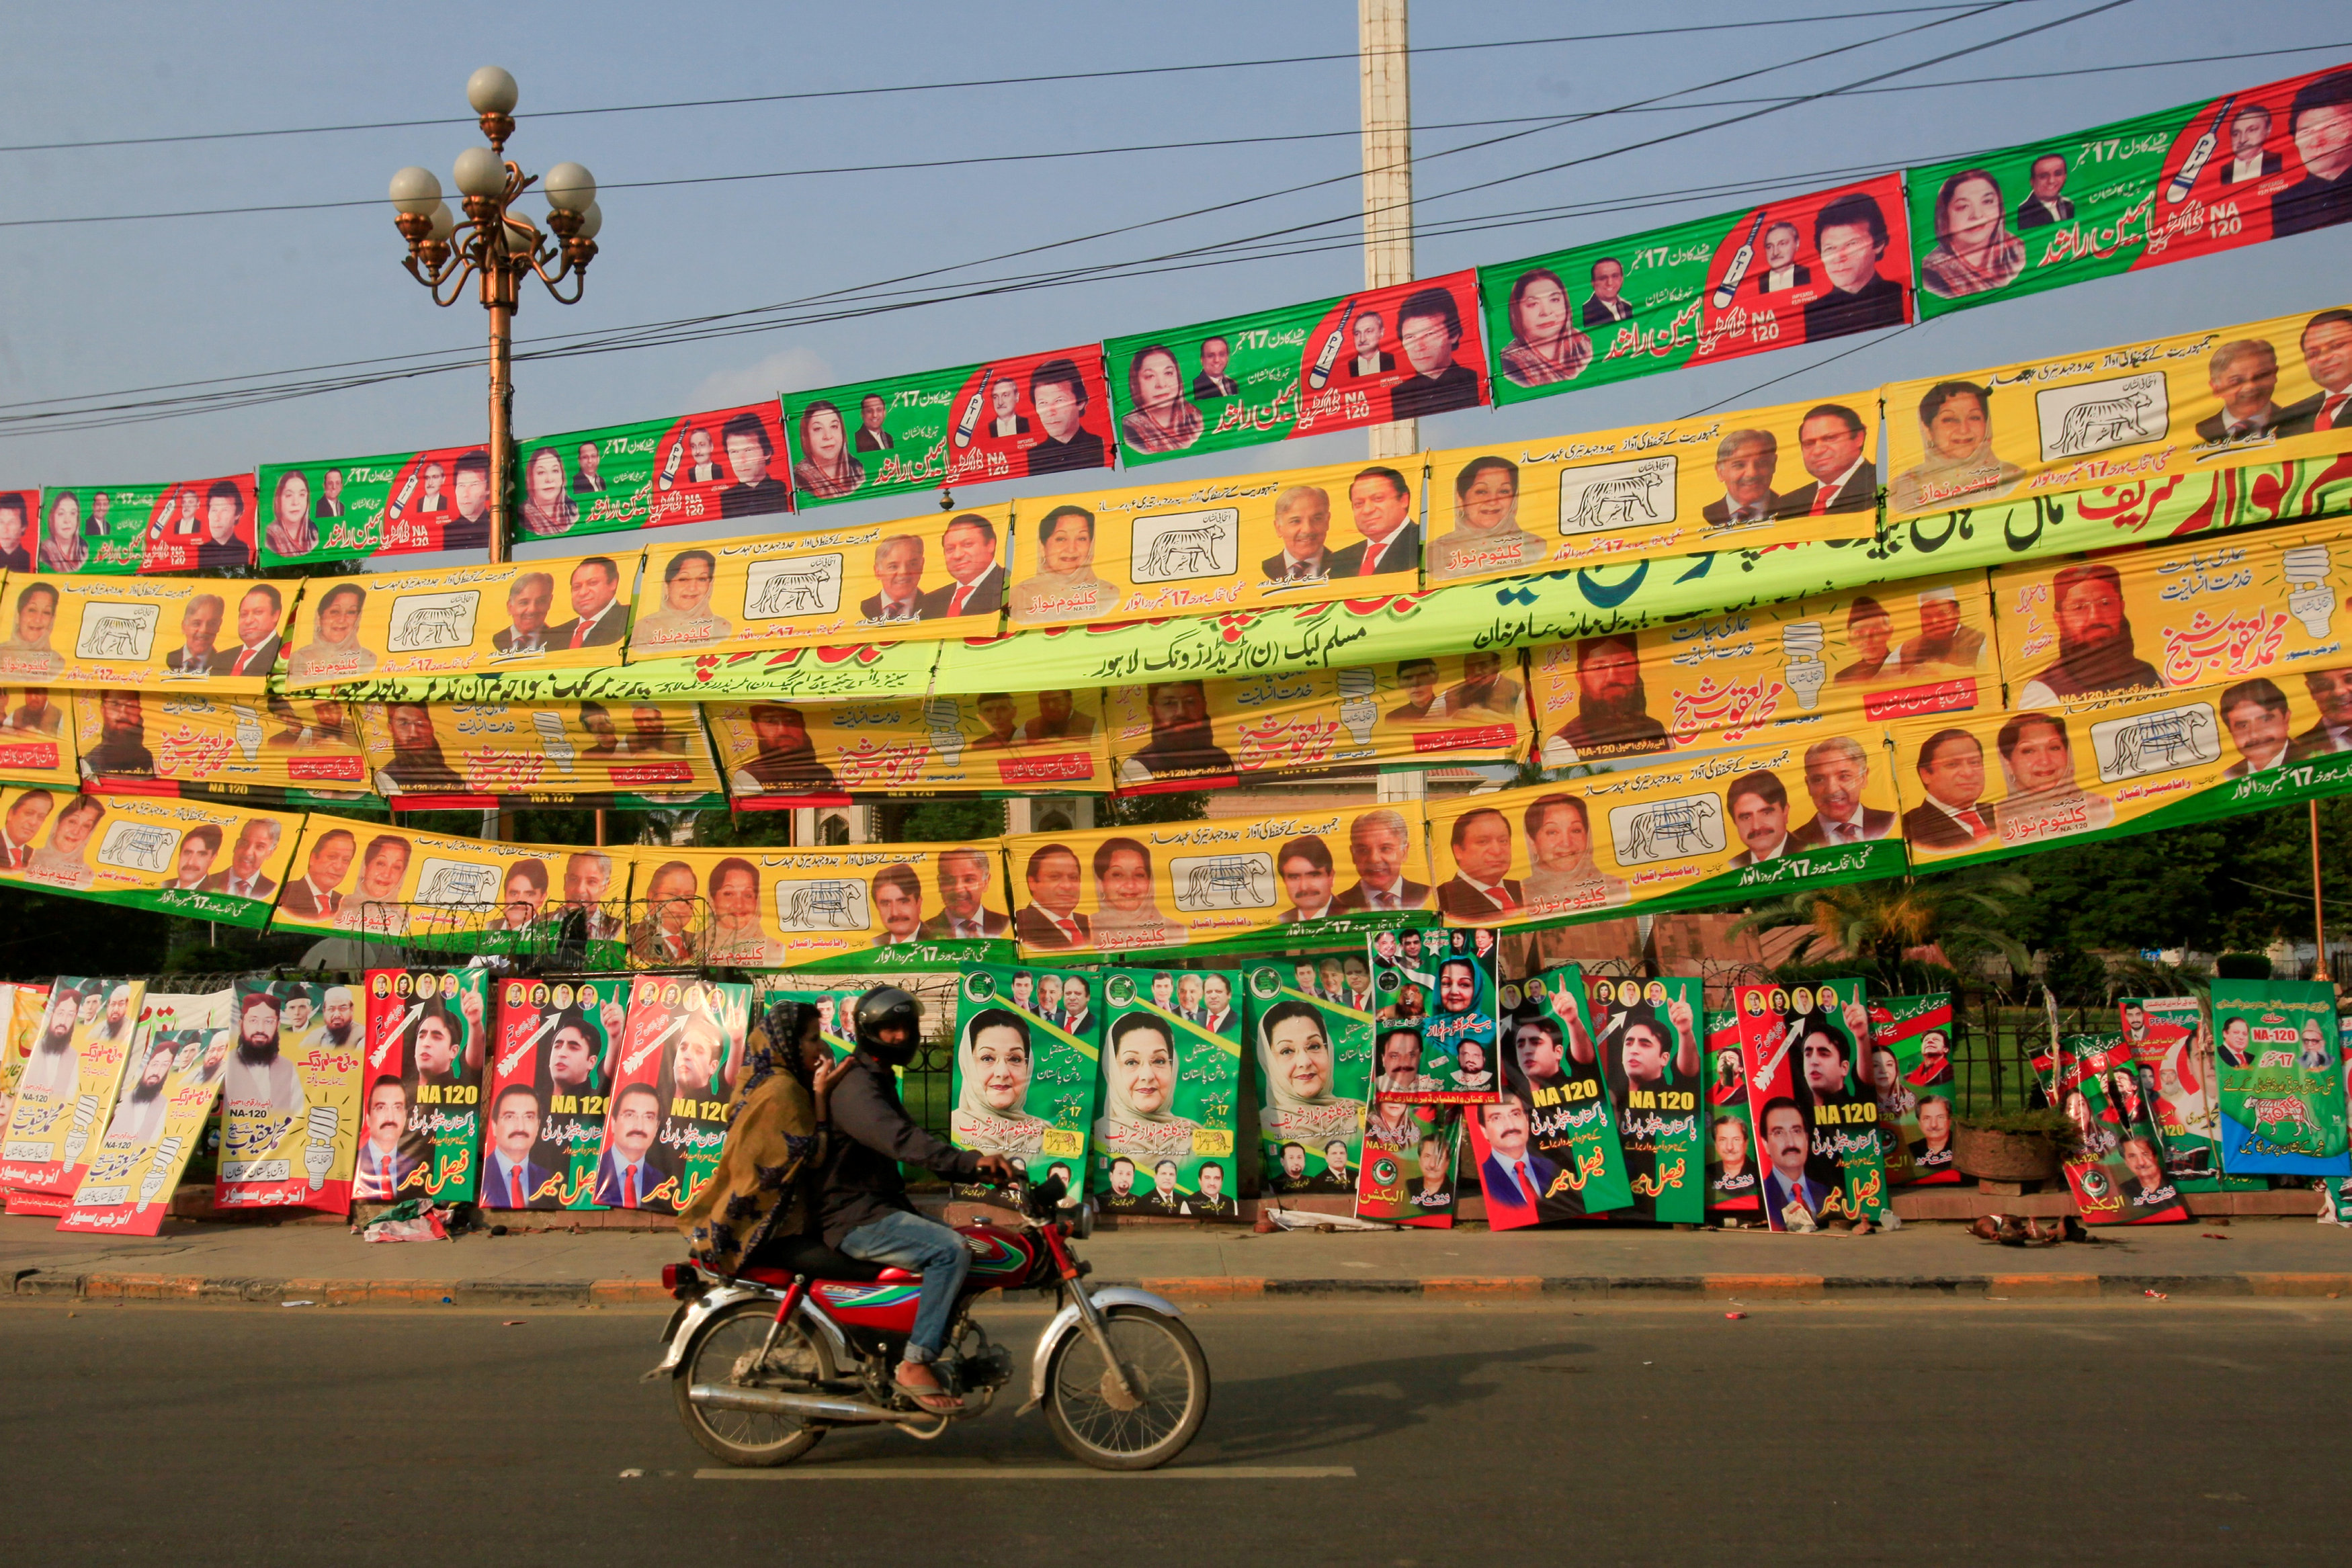 All eyes in Pakistan on Sunday's by-election in Lahore's NA-120